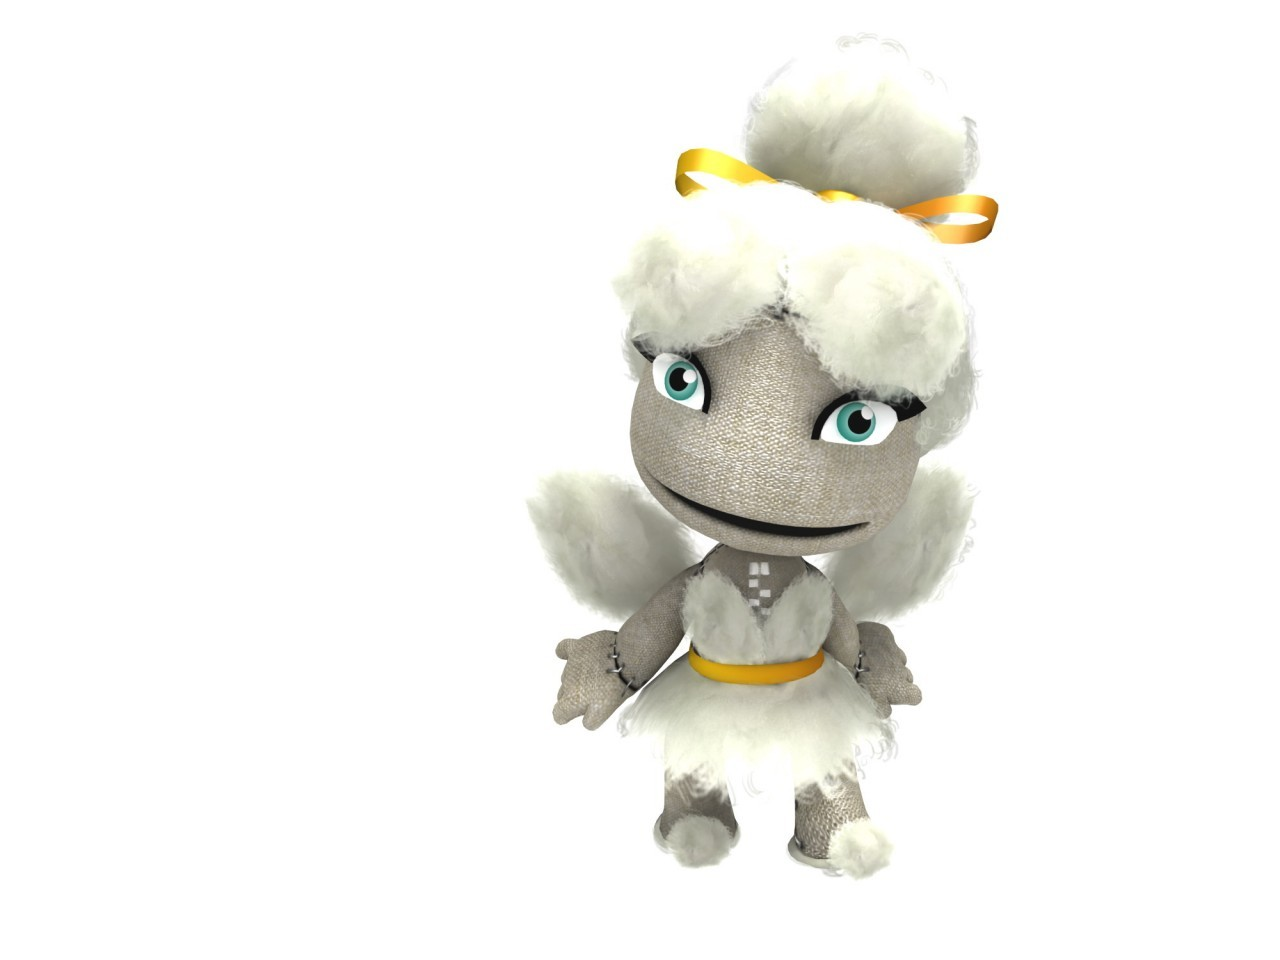 lbp2 dating Lbp2 adventure trailer littlebigplanet 2 is a handmade hamper of imaginative delights, where the whole world is creating games for you buy now.